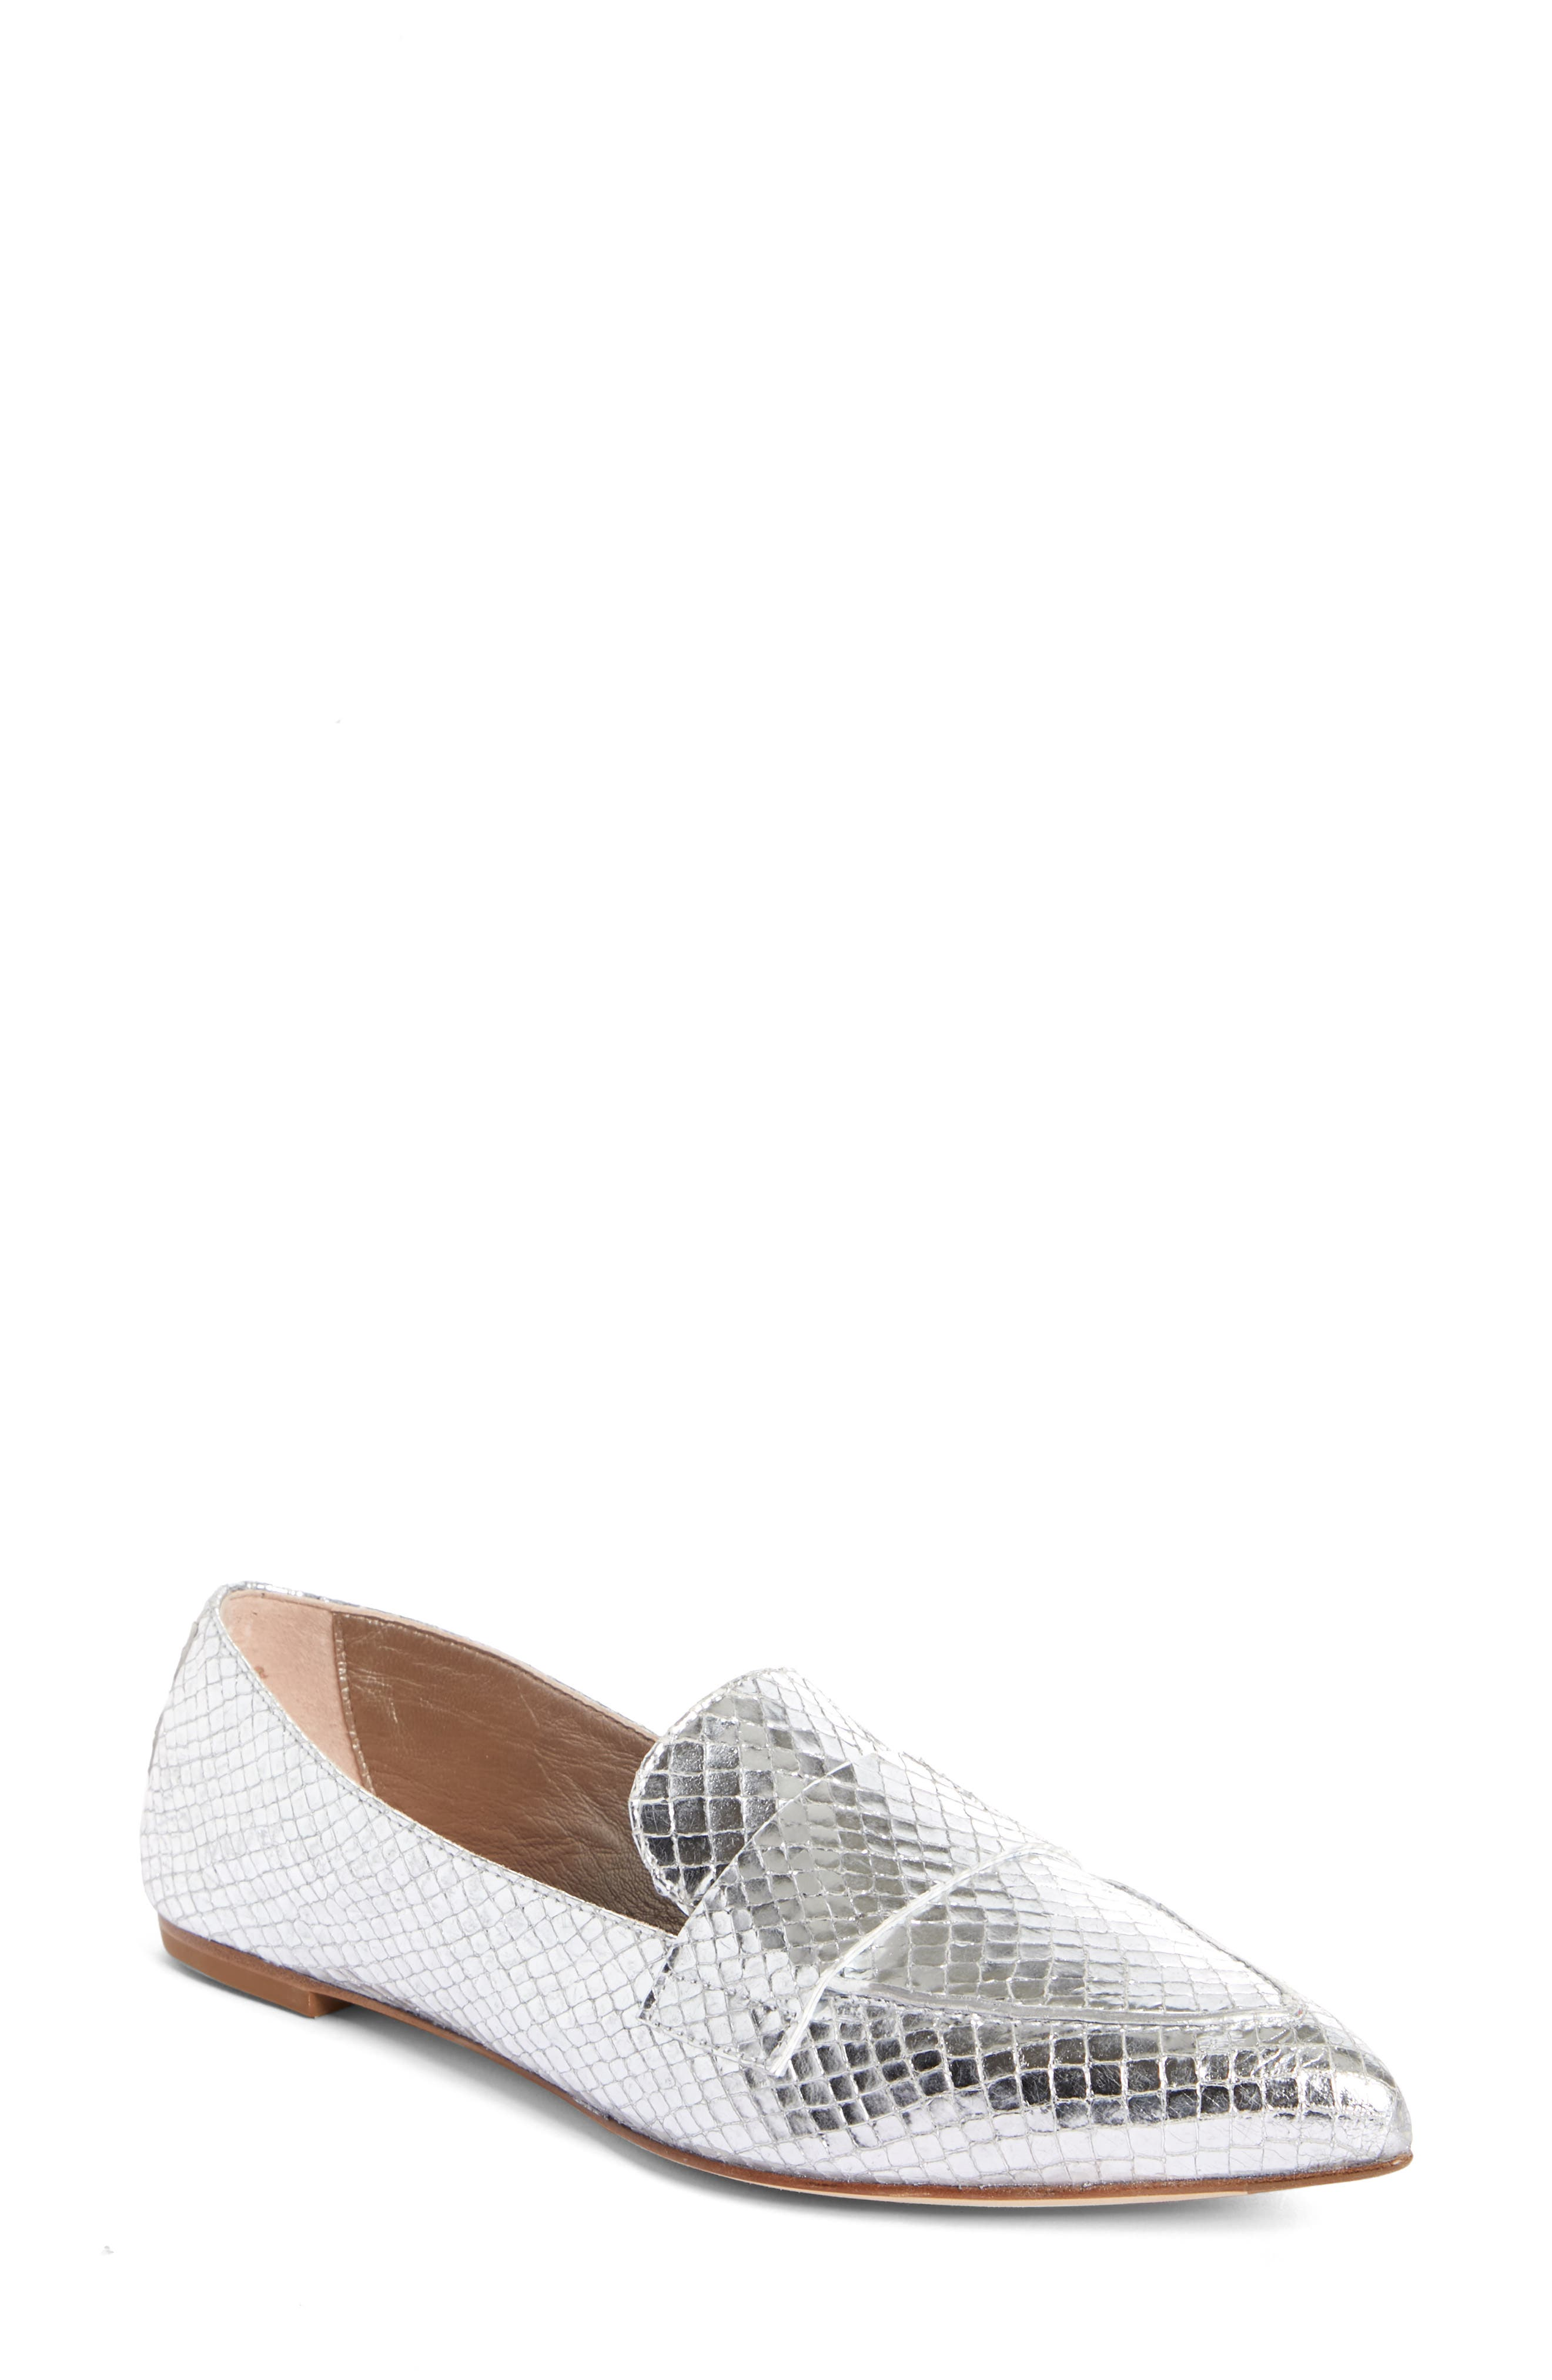 Agl Softy Pointy Toe Moccasin Loafer, Metallic